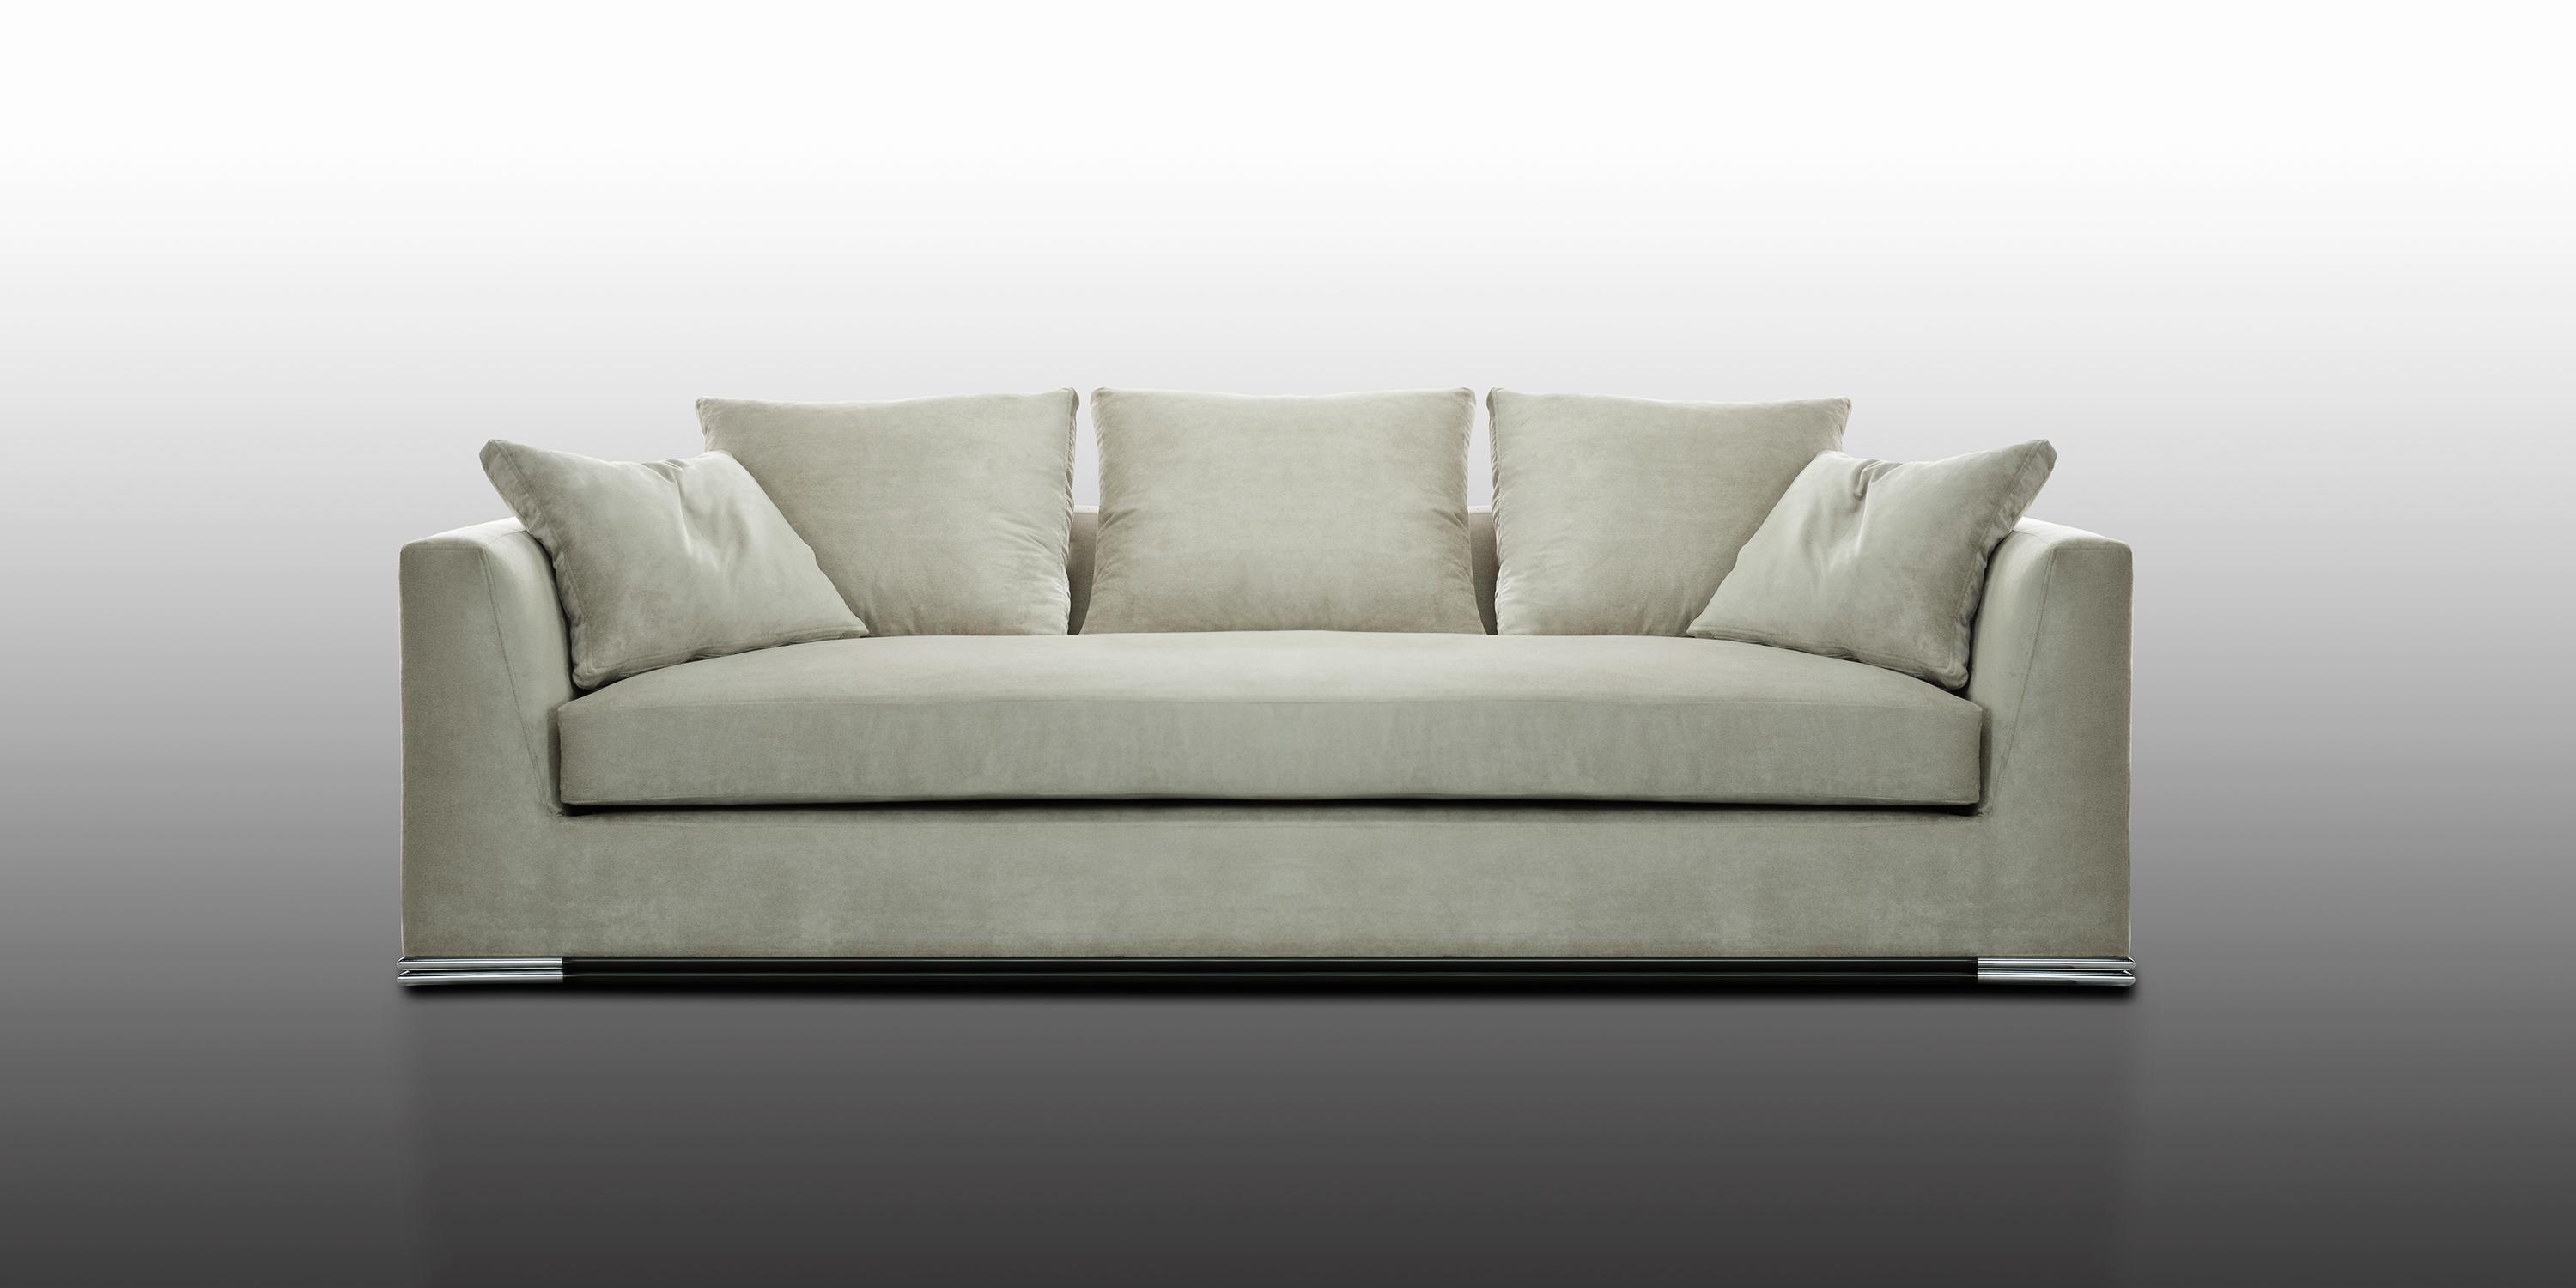 Sofas Center : Astounding Nathan Anthony Sofa Pictures Ideas Na Hp Intended For Nathan Anthony Sofas (View 14 of 20)